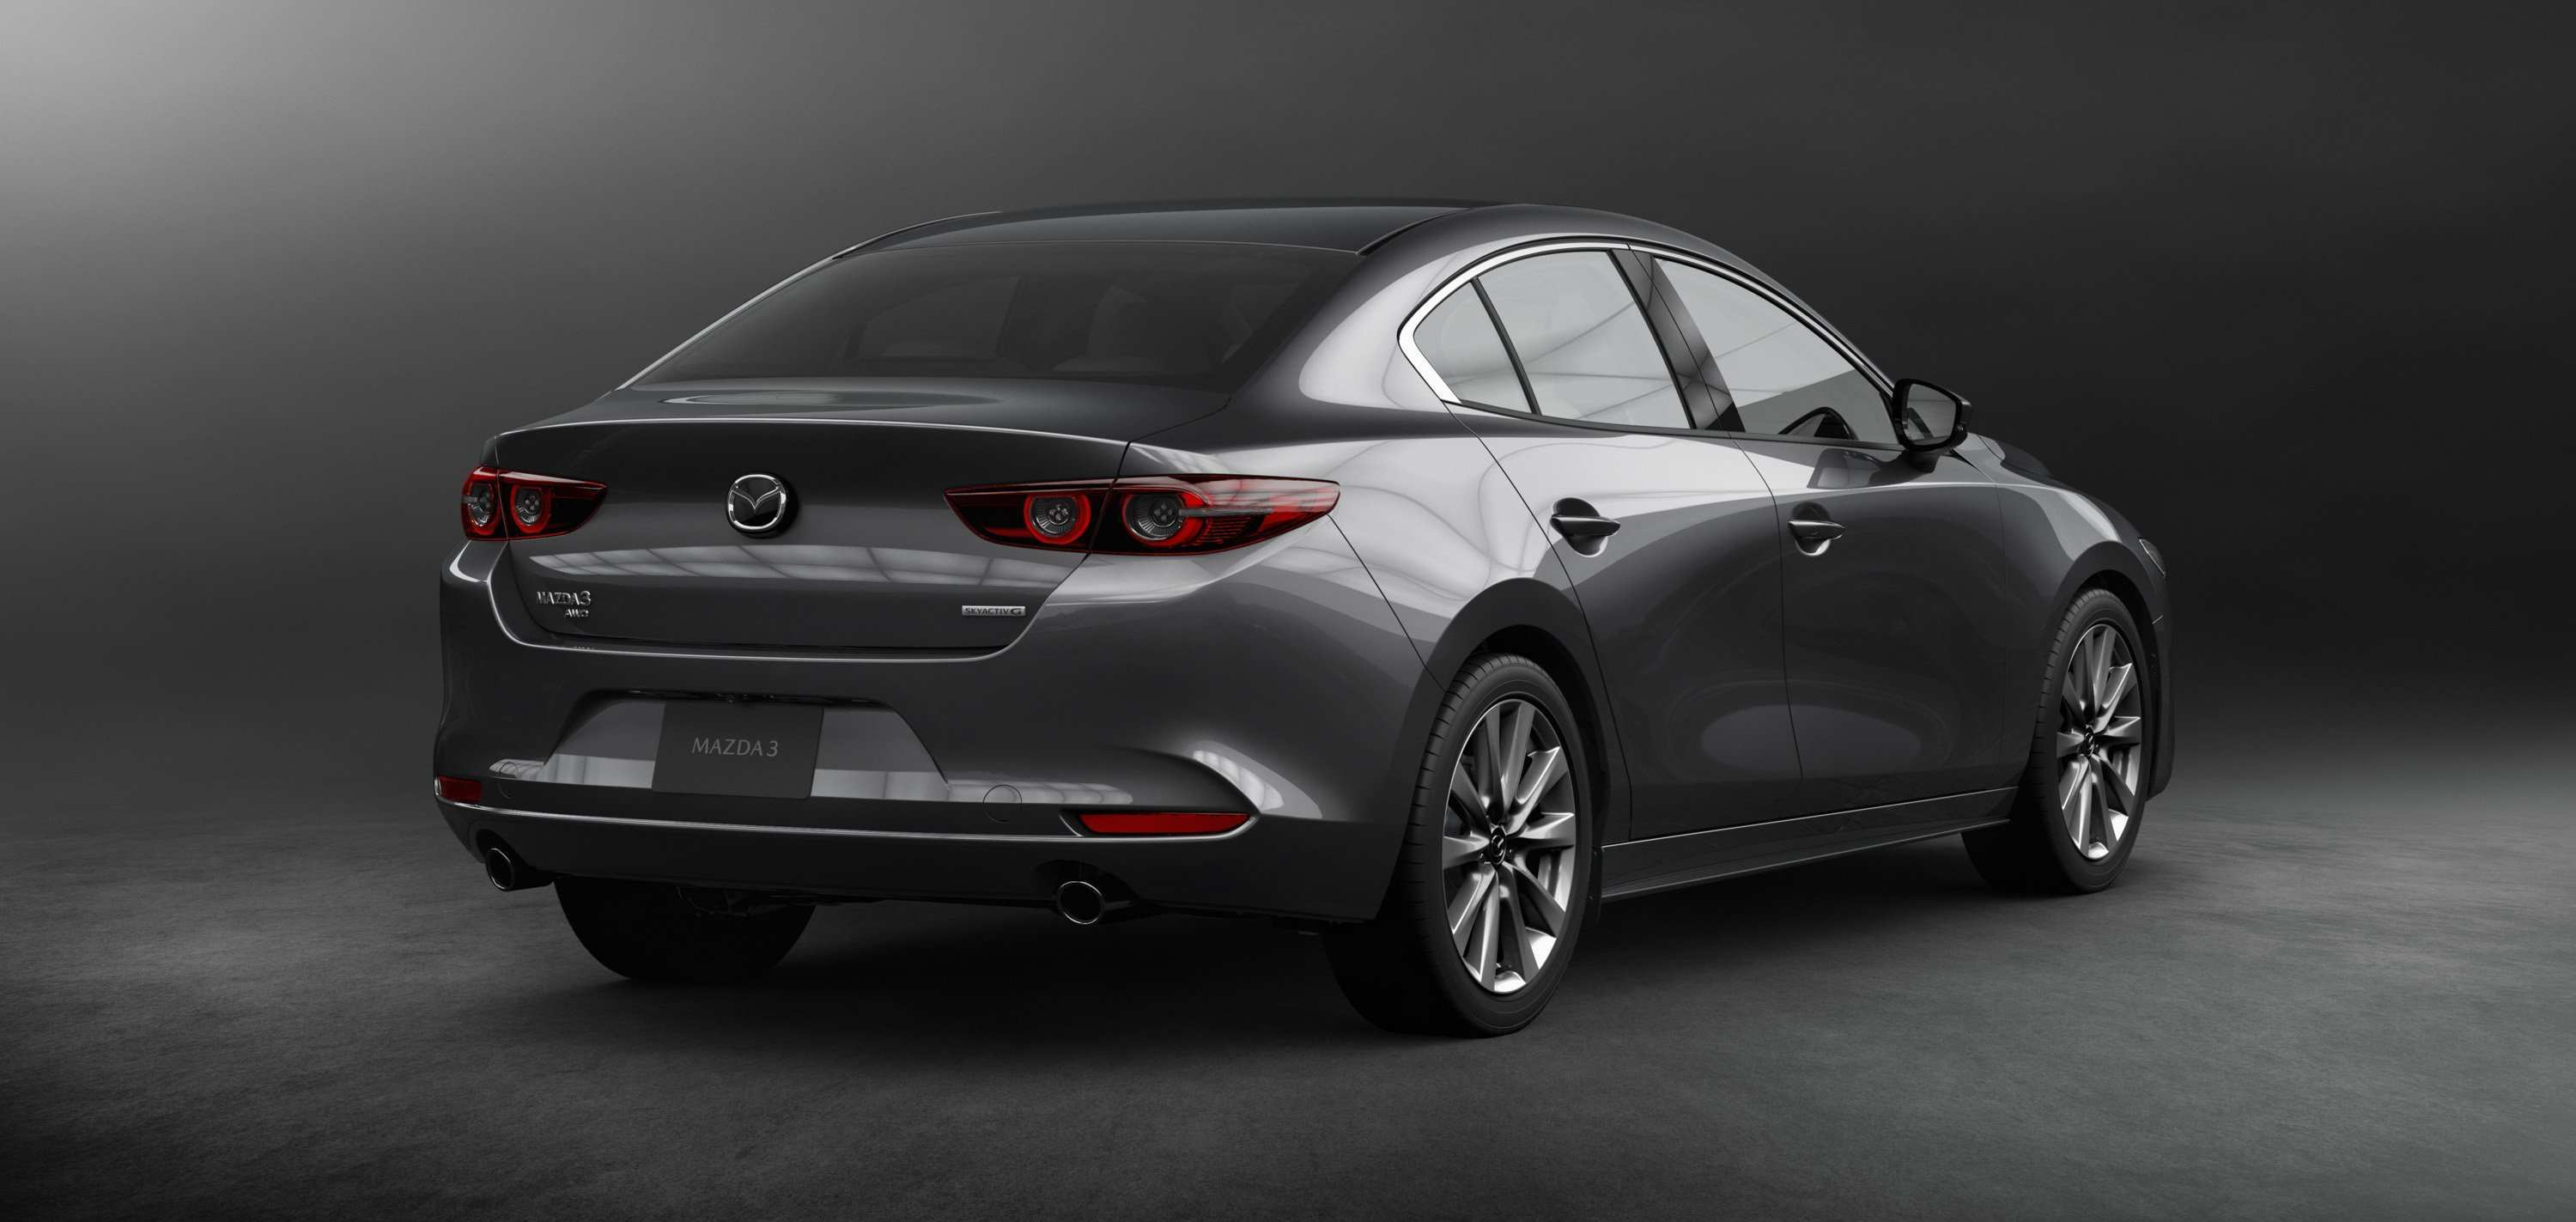 35 Concept of The Mazda 3 2019 Debut Exterior Ratings by The Mazda 3 2019 Debut Exterior